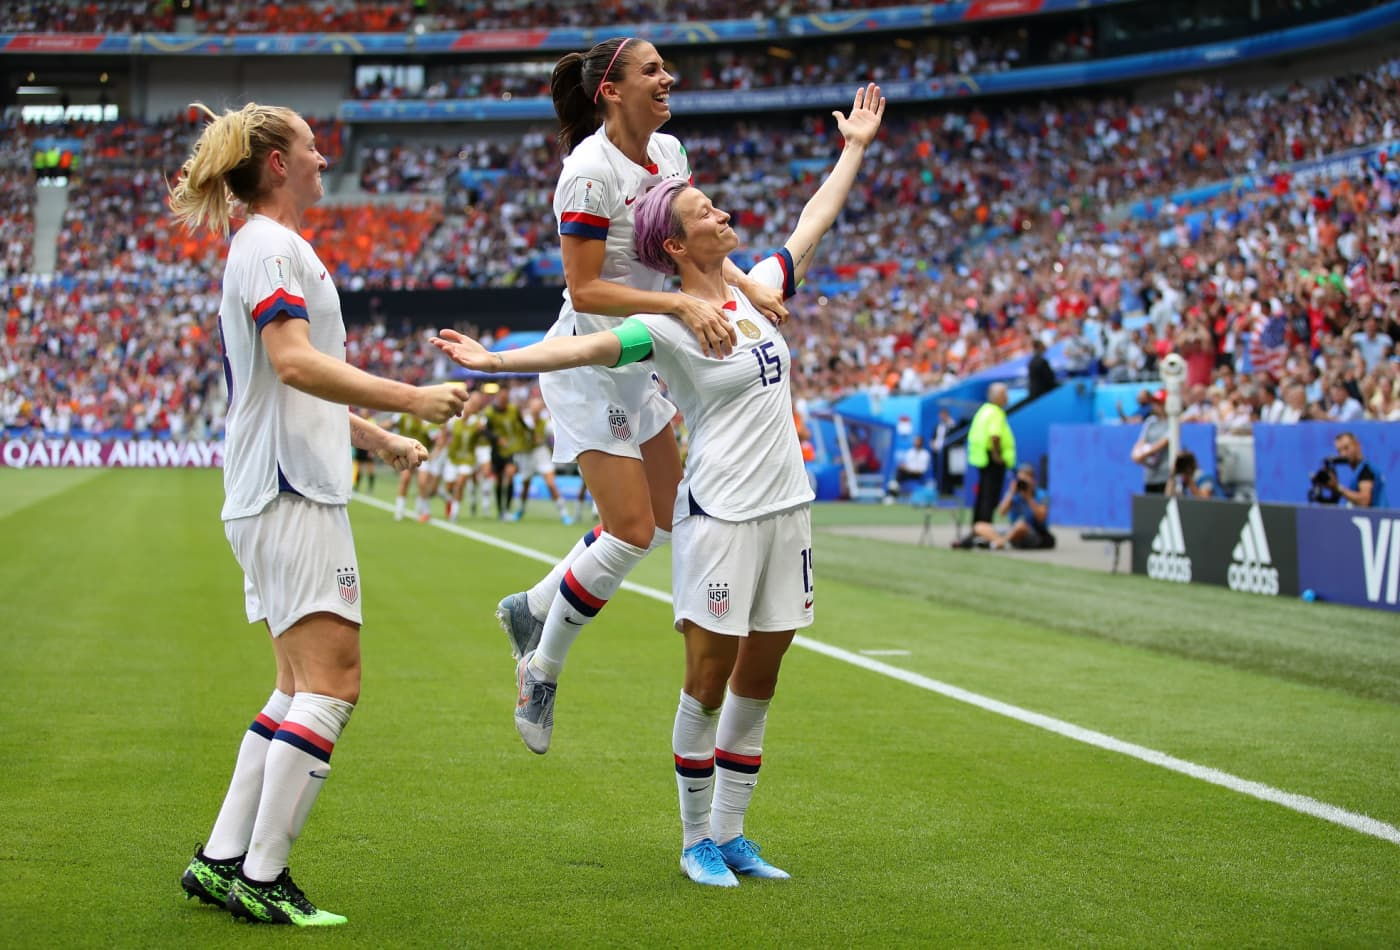 celebrates with teammates alex morgan and samantha mewis after scoring her team s first goal during the 2019 fifa women s world cup france final match